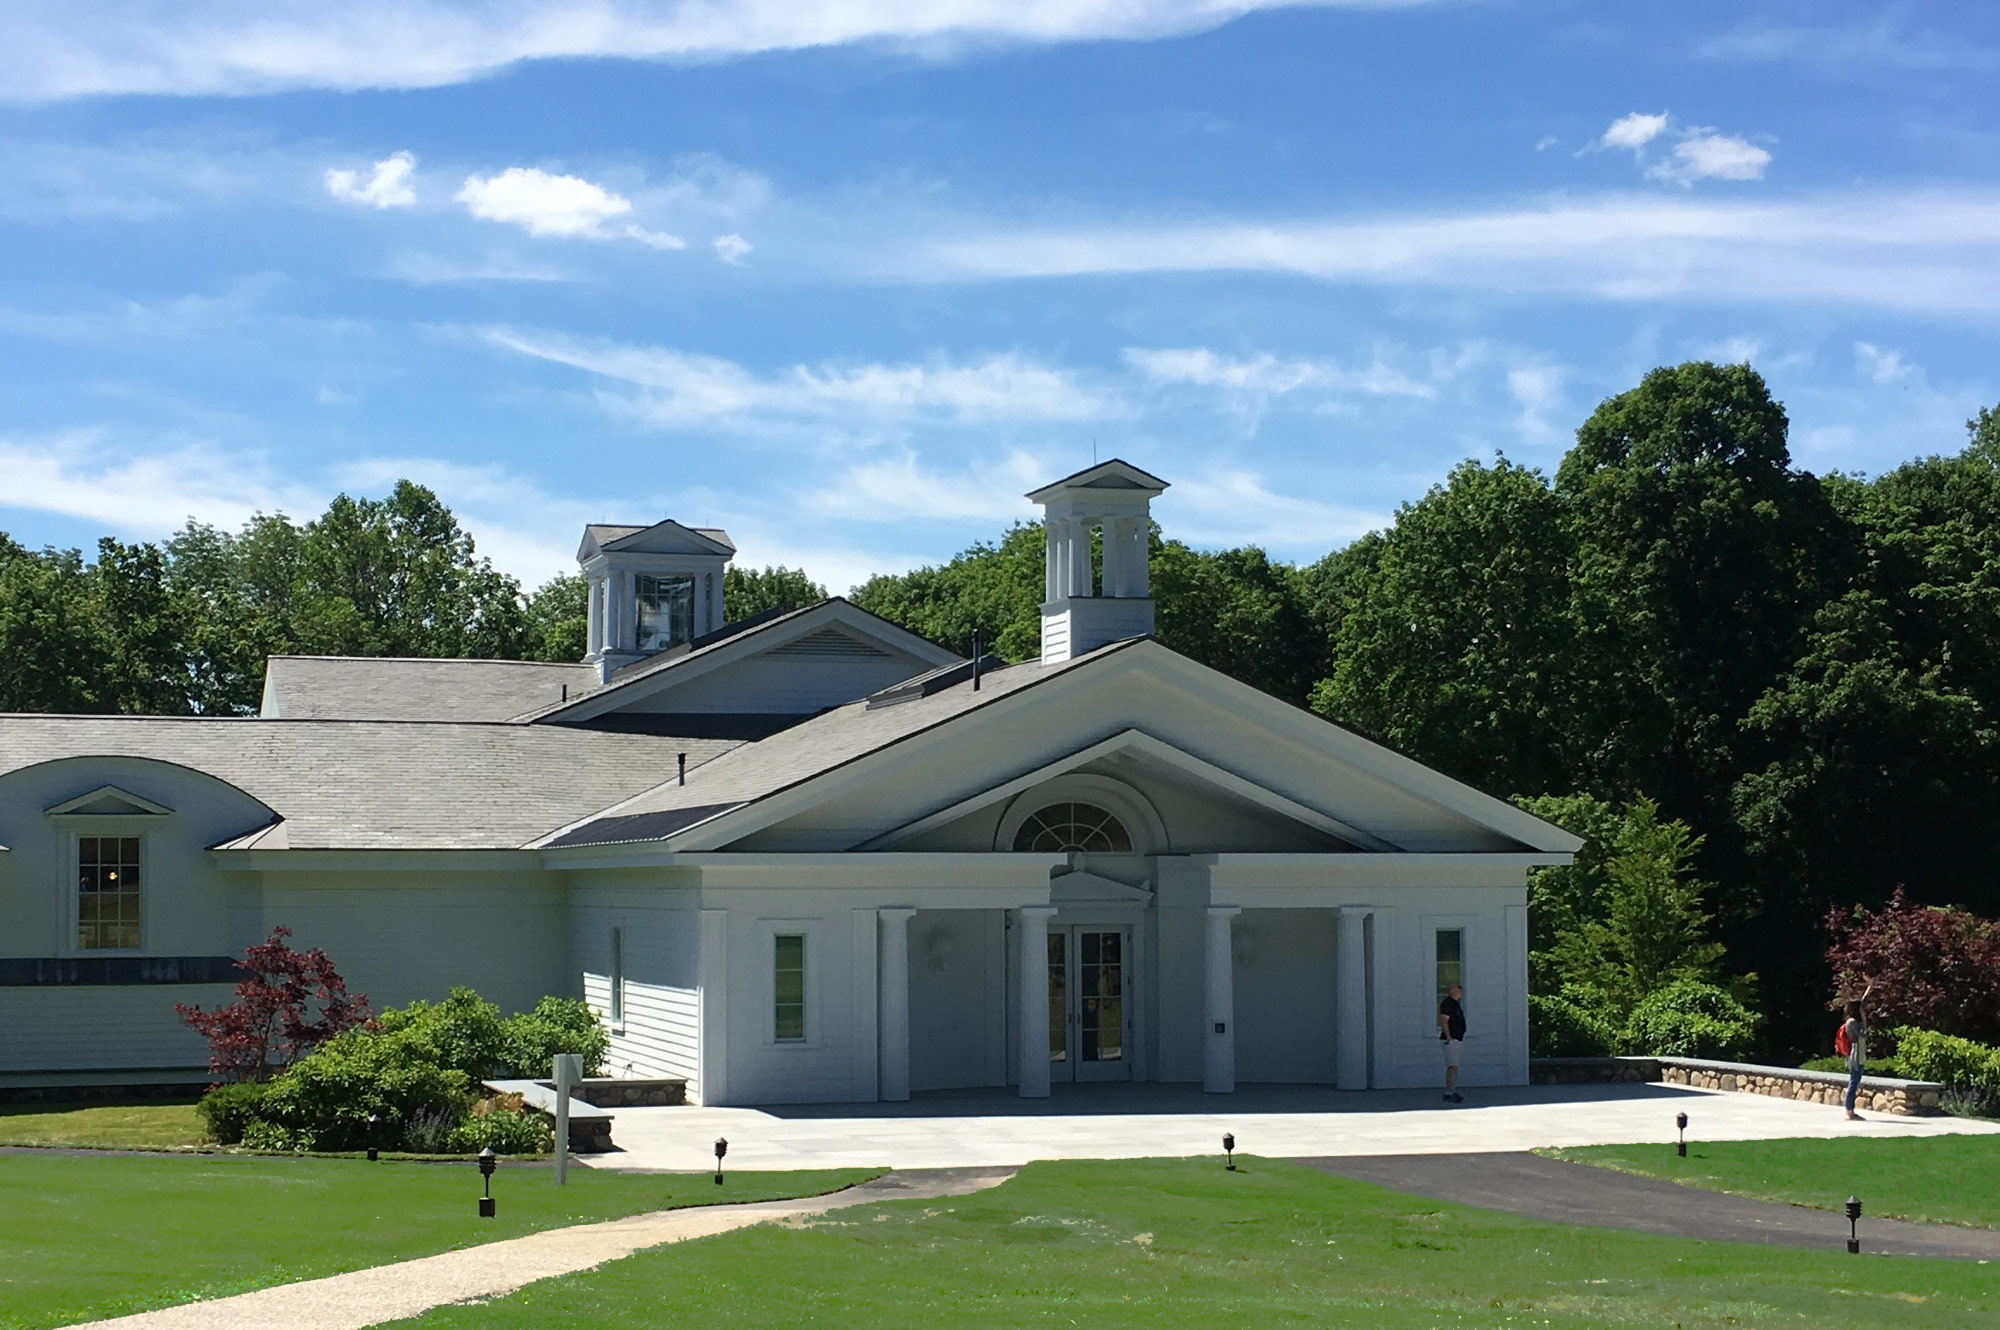 About Norman Rockwell Museum